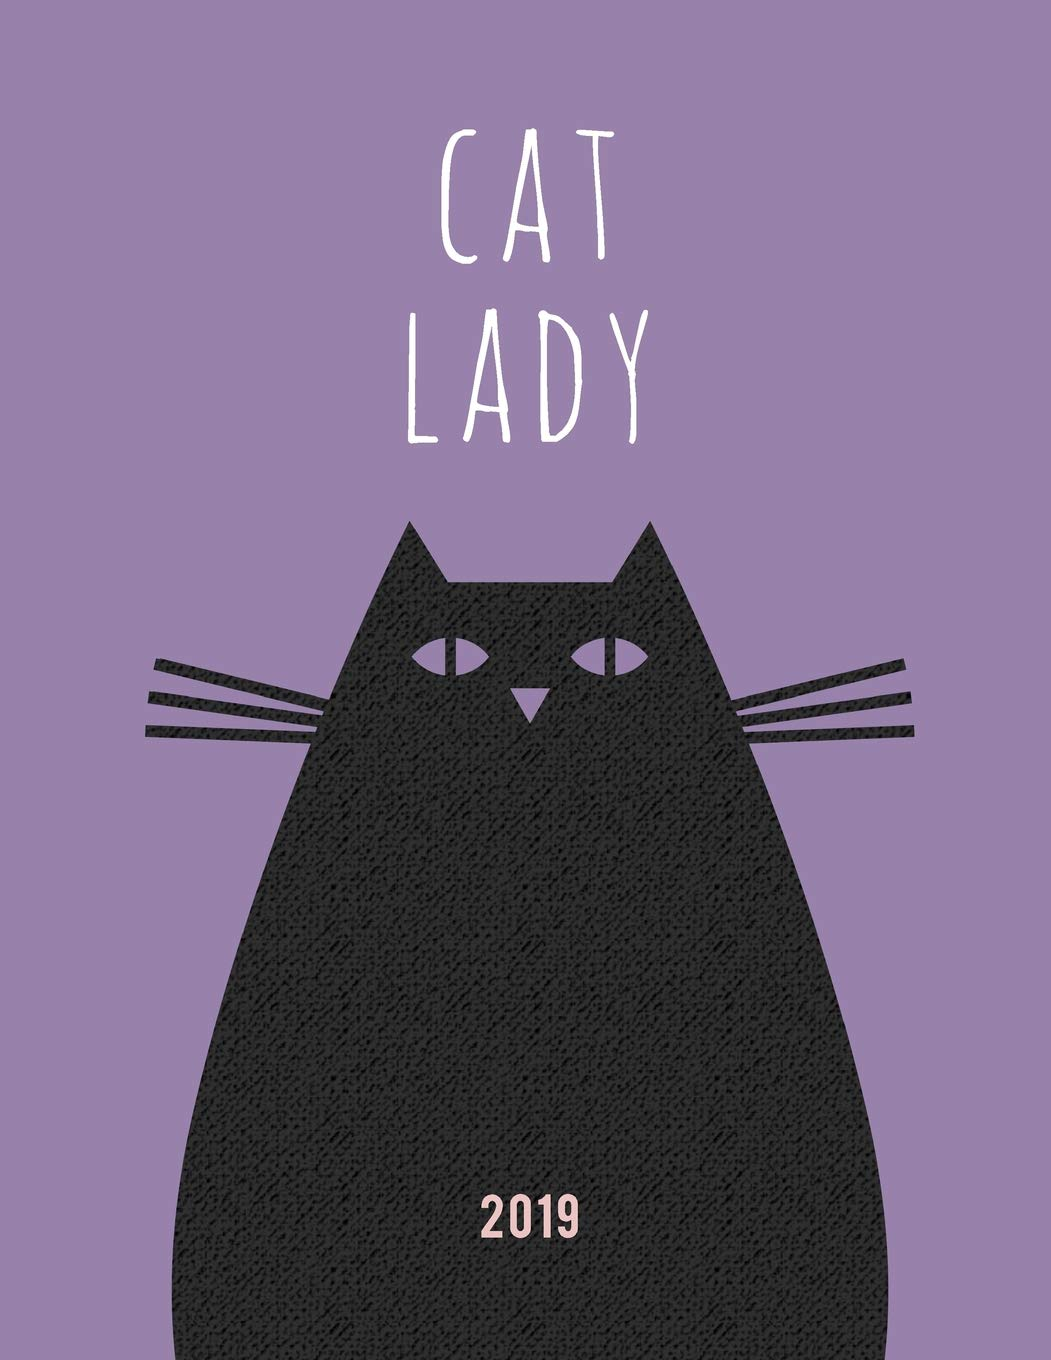 Cat Lady 2019: 2019 Weekly Daily Planner for Crazy Cat ...